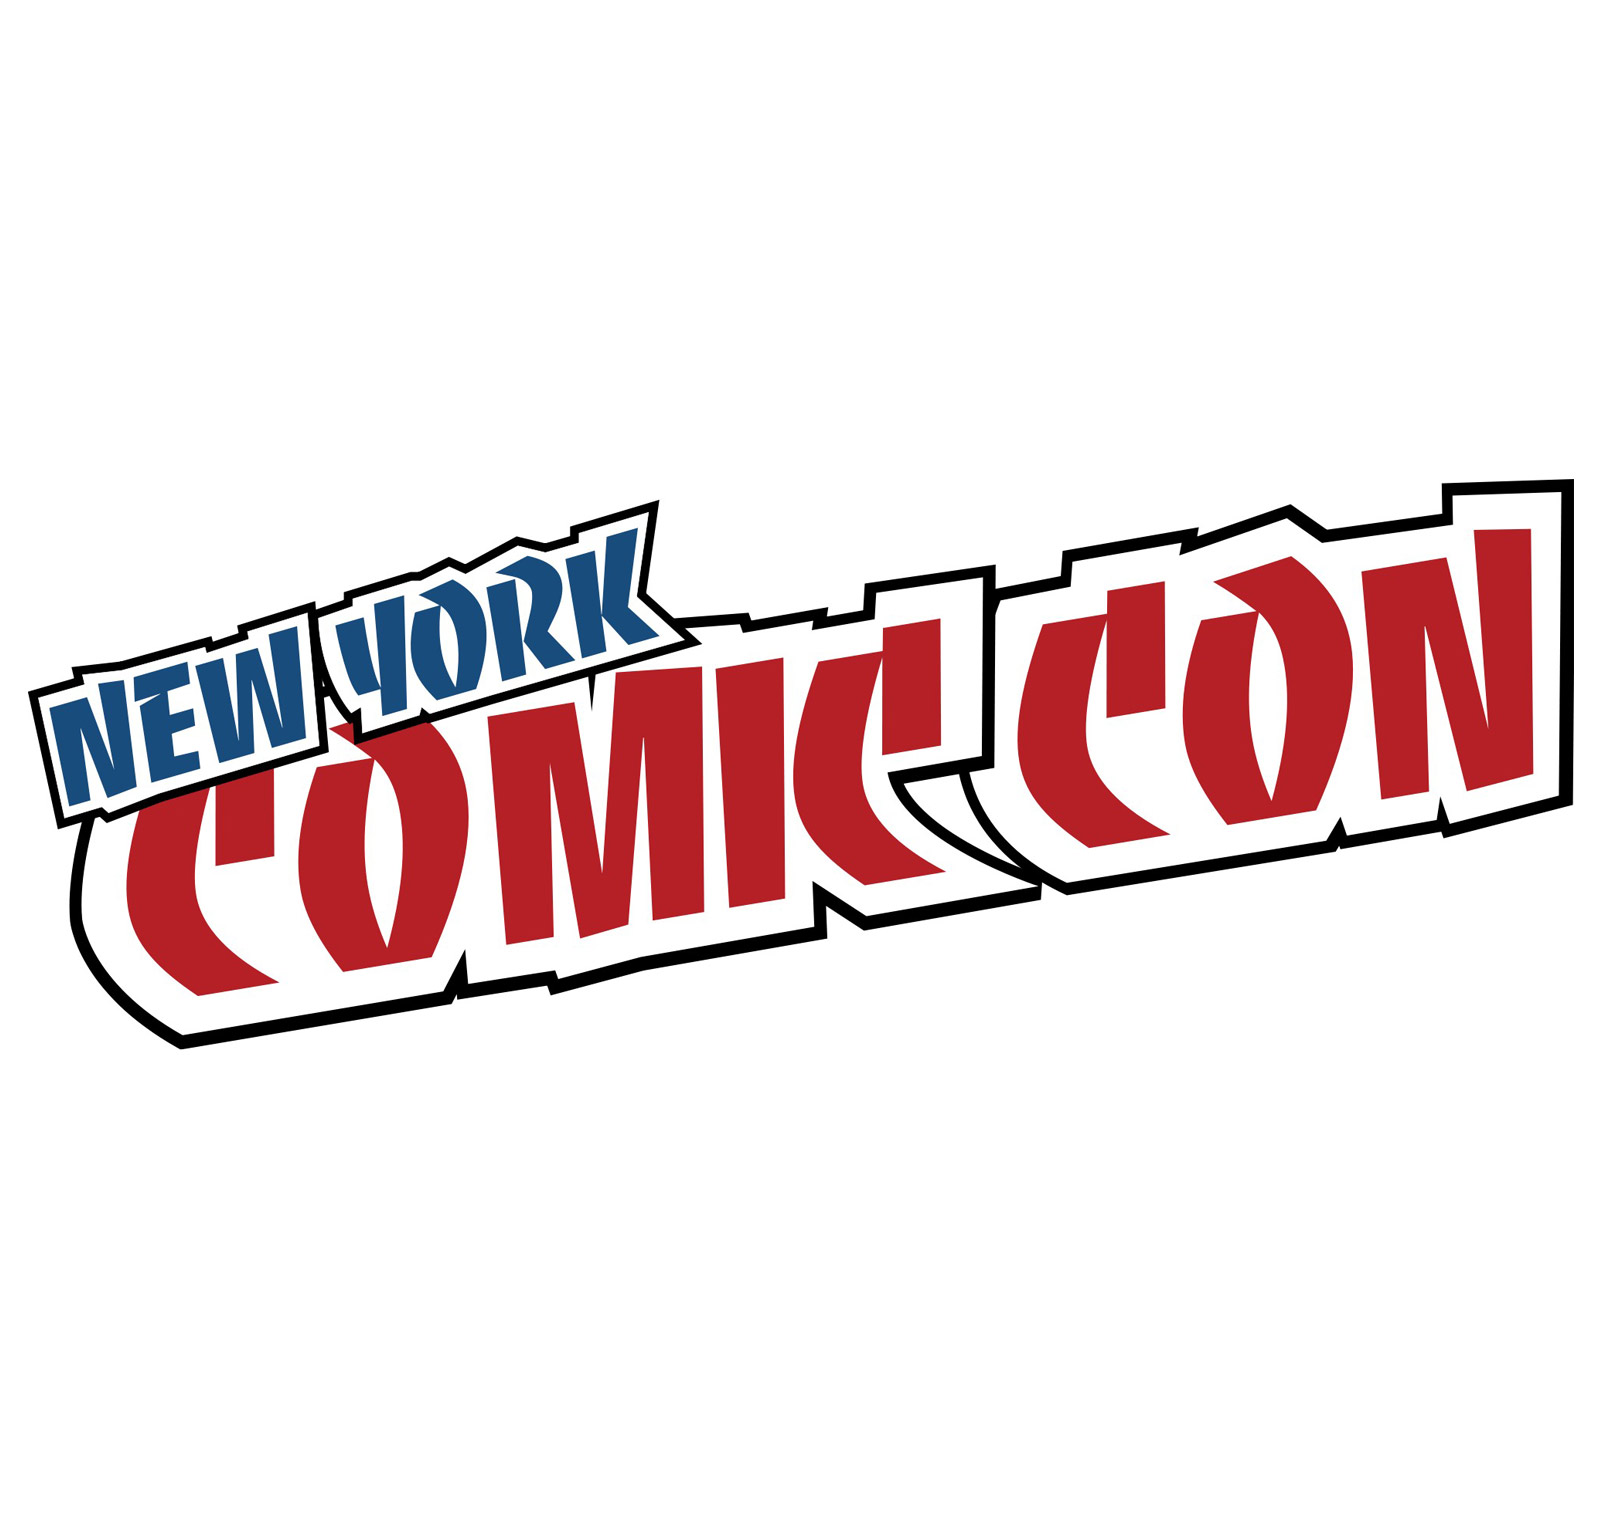 """A blue, red, and black logo reading """"New York Comic Con"""" in bold, funky text reads diagonally across a white background."""